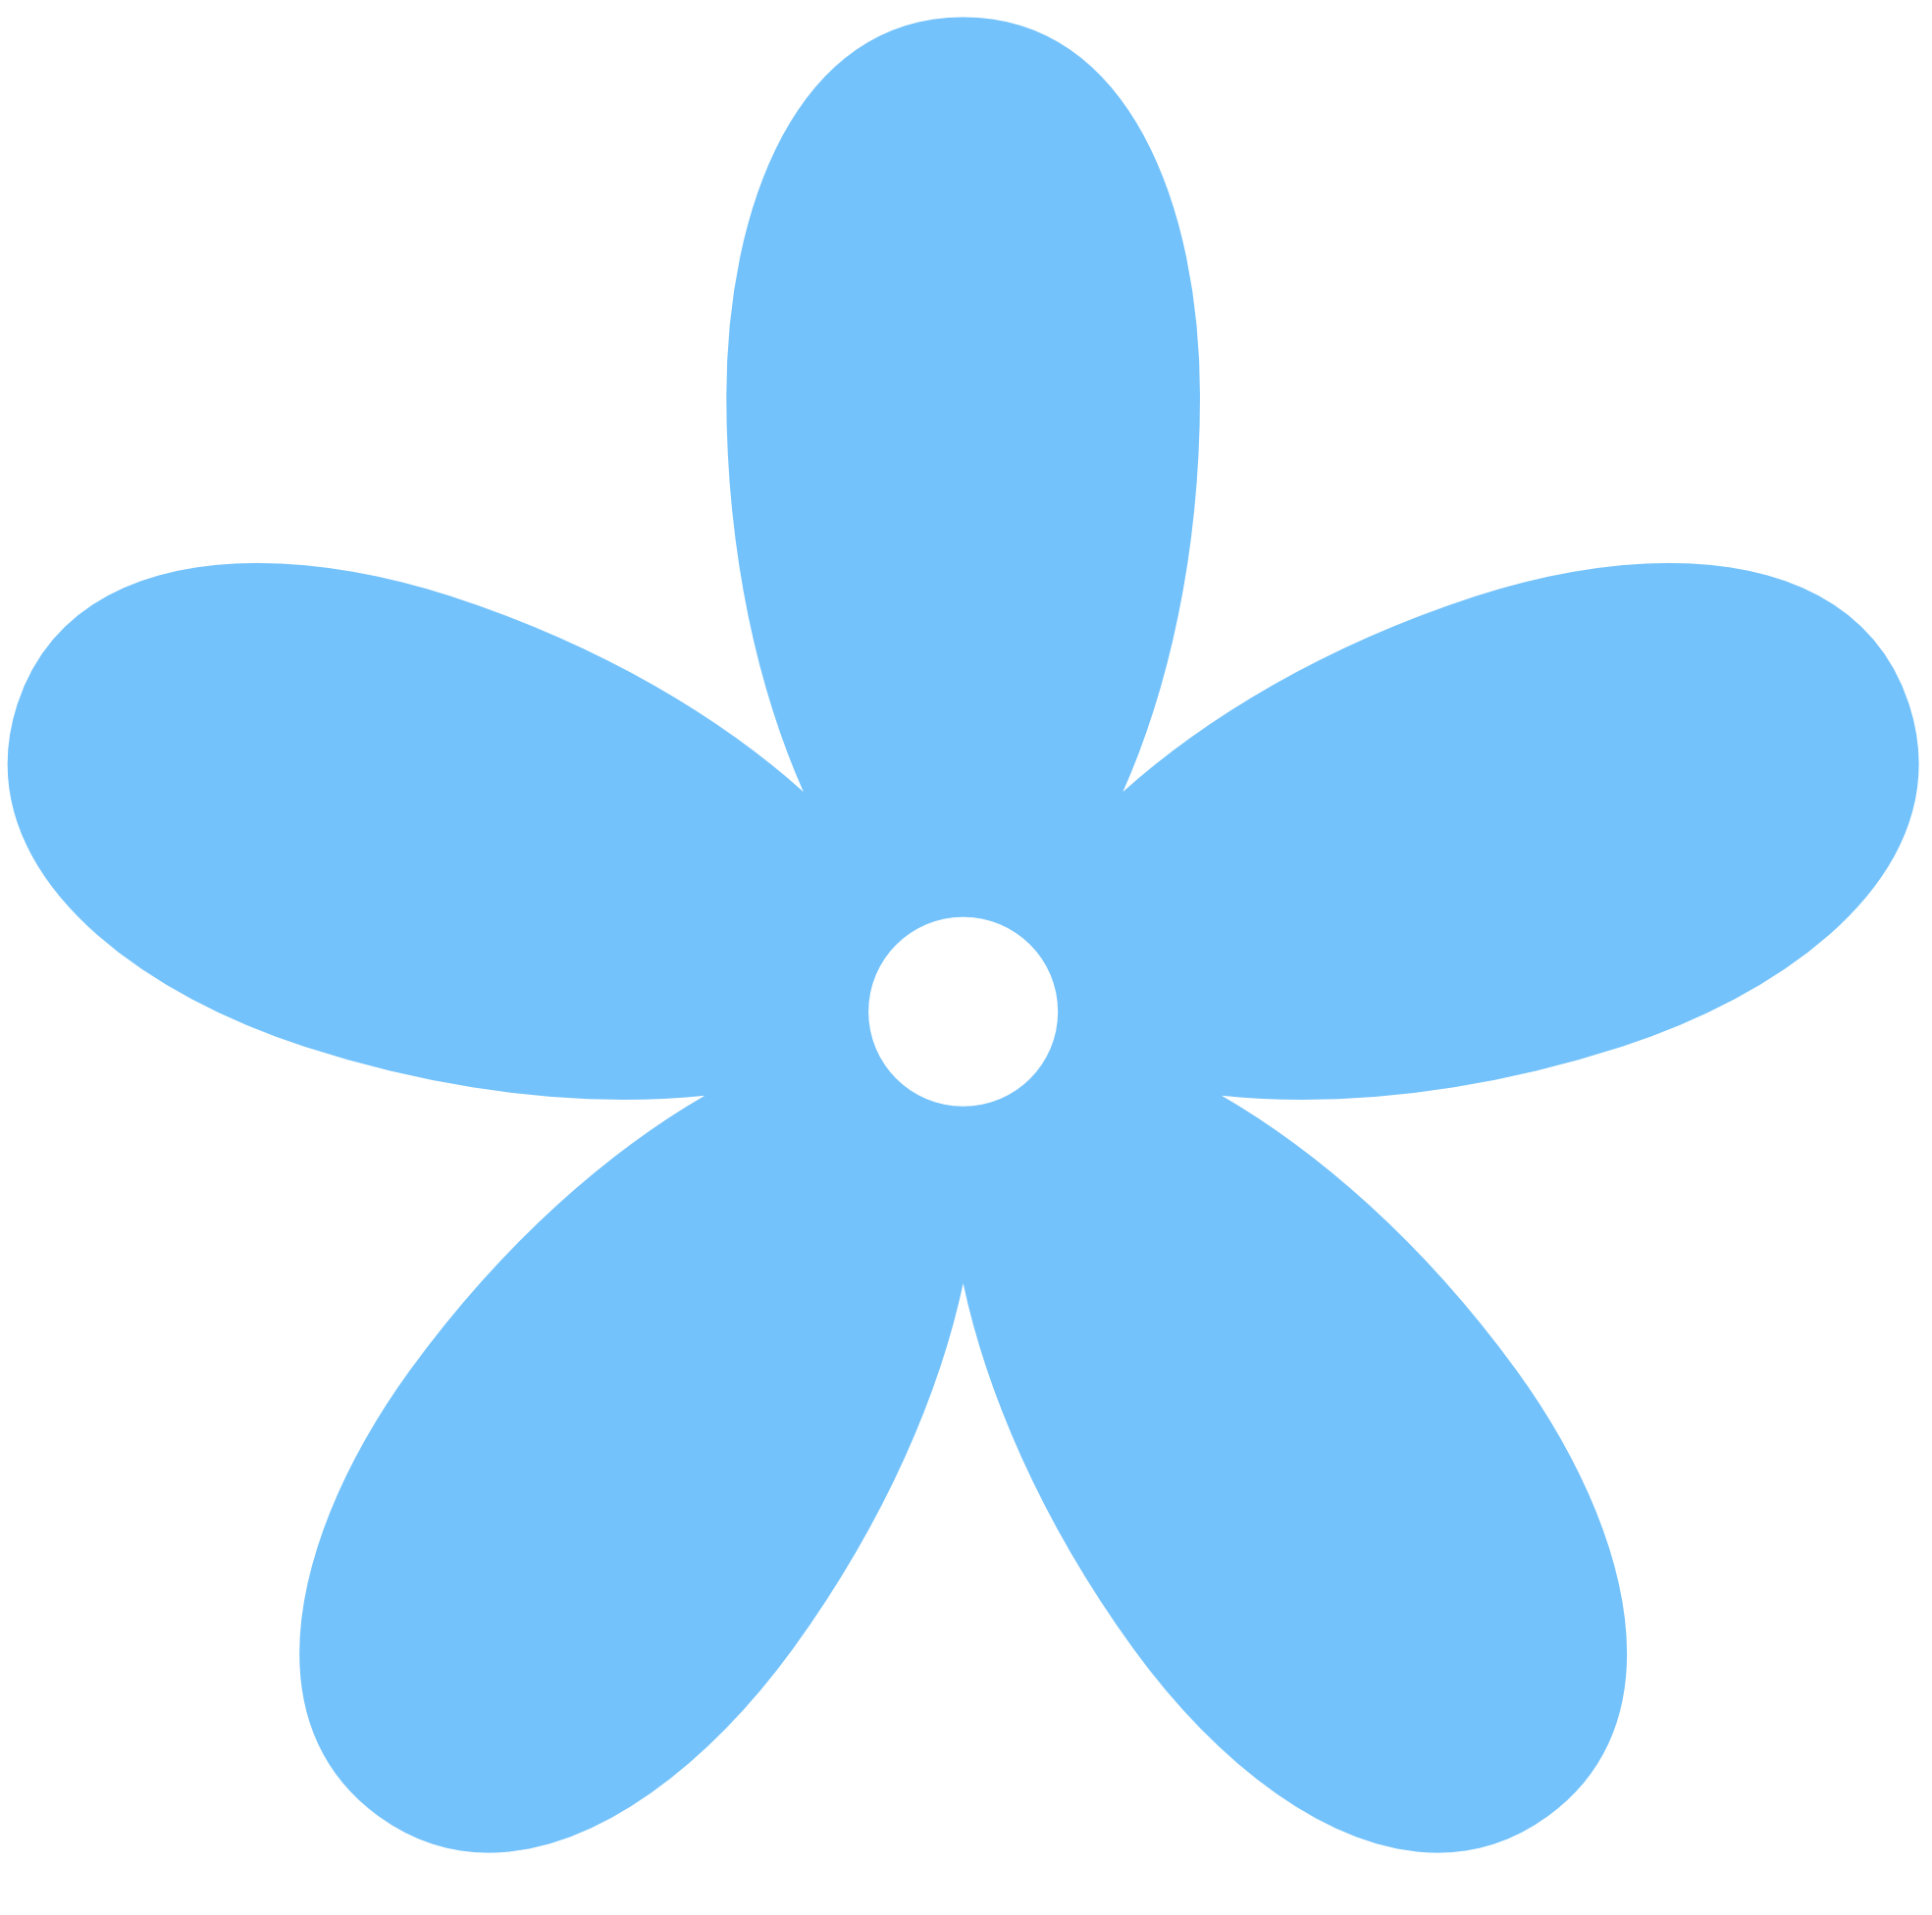 Free Blue Flower Clipart, Download Free Clip Art, Free Clip